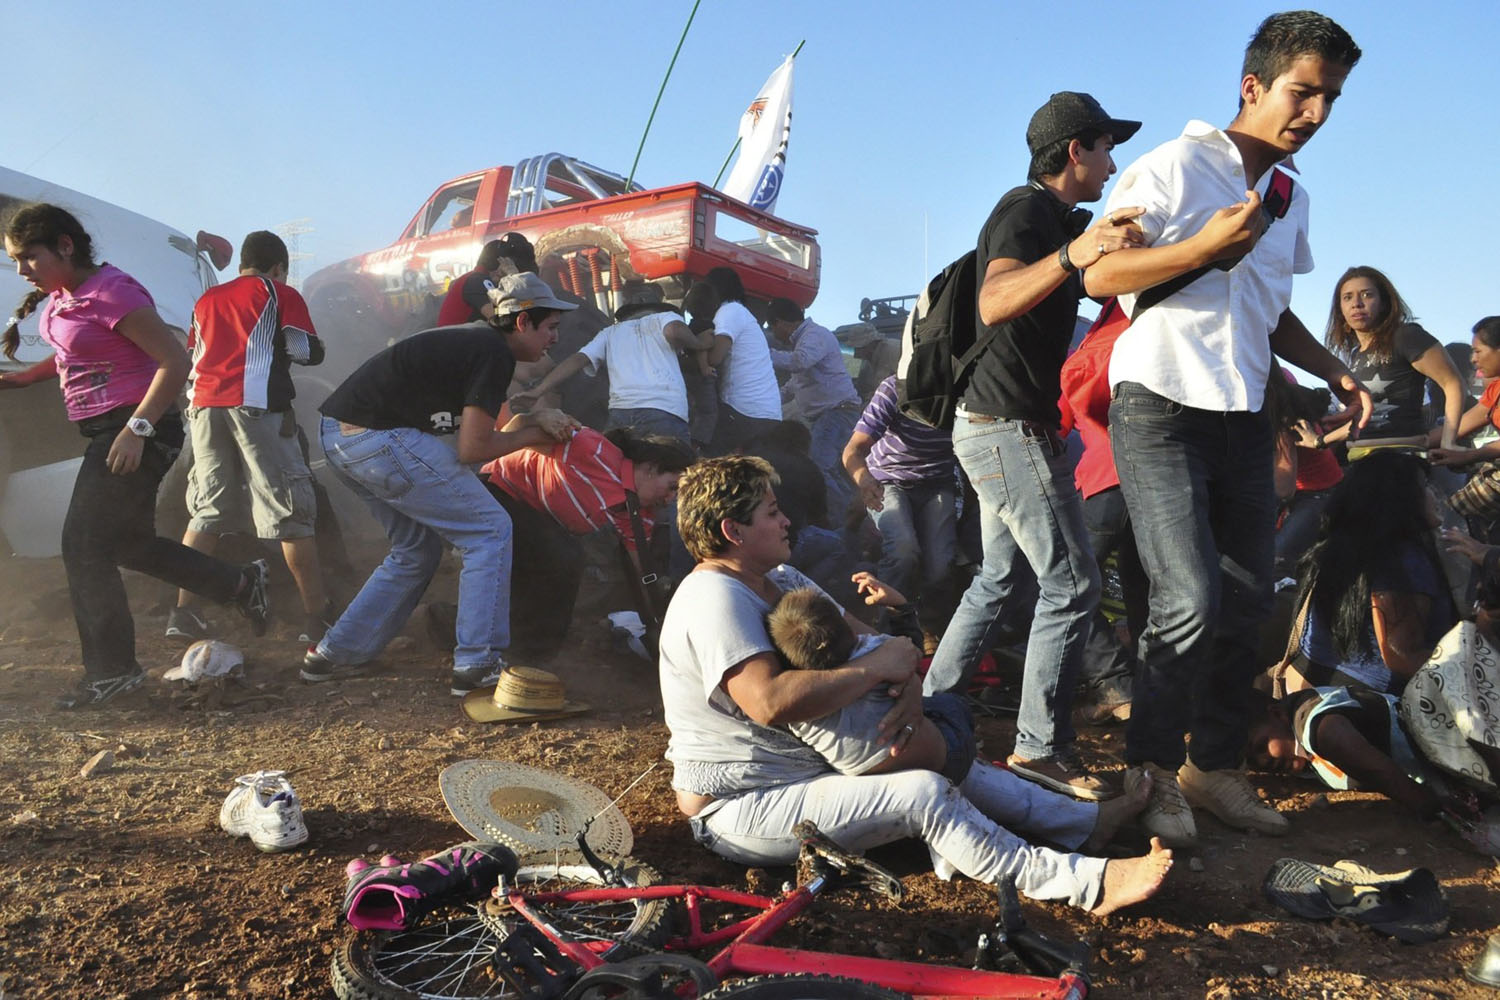 Oct. 5, 2013. Spectators react after a monster truck rammed the stand where they were watching a monster truck rally show at El Rejon park, on the outskirts of Chihuahua, Mexico.